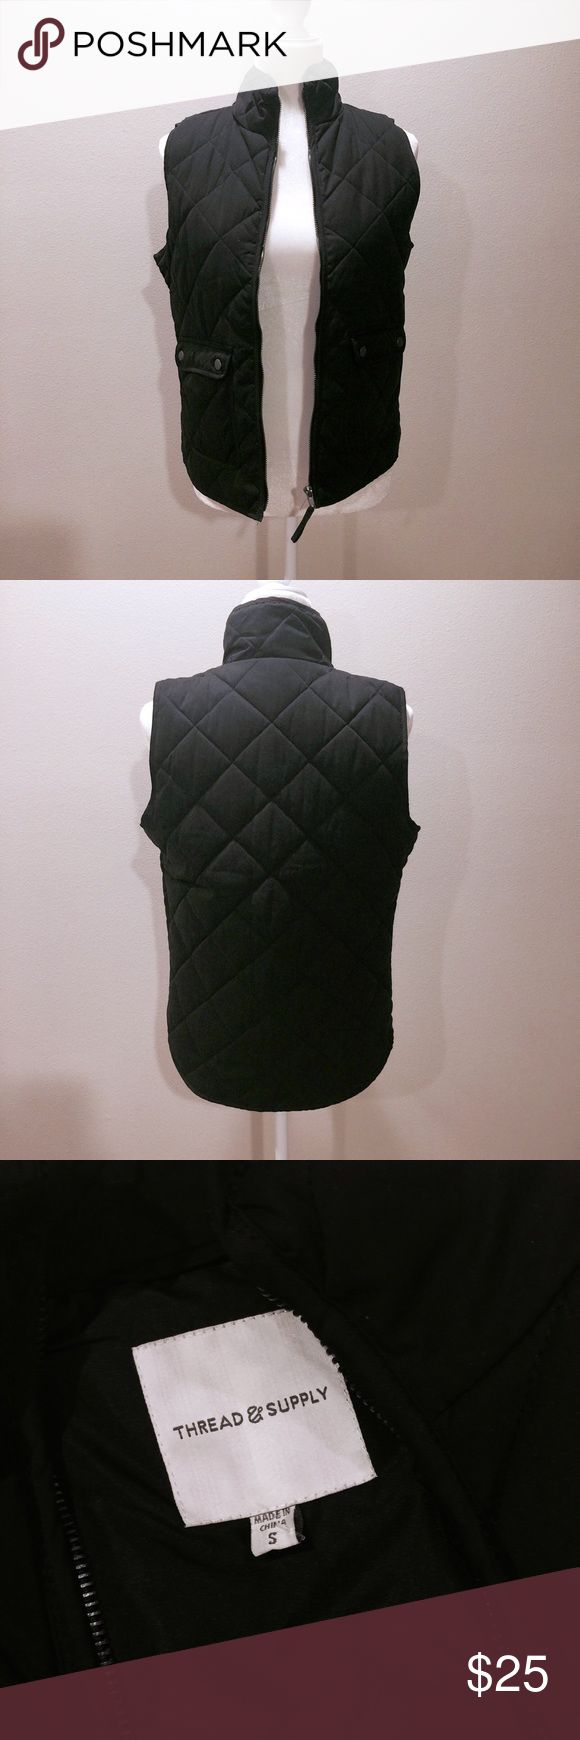 NWOT 'Thread & Supply' Quilted Vest NWOT black quilted vest. Lined. Front snap-flap pockets. Layer your favorite hoody or flannel under. Perfect transitional piece. Jackets & Coats Vests